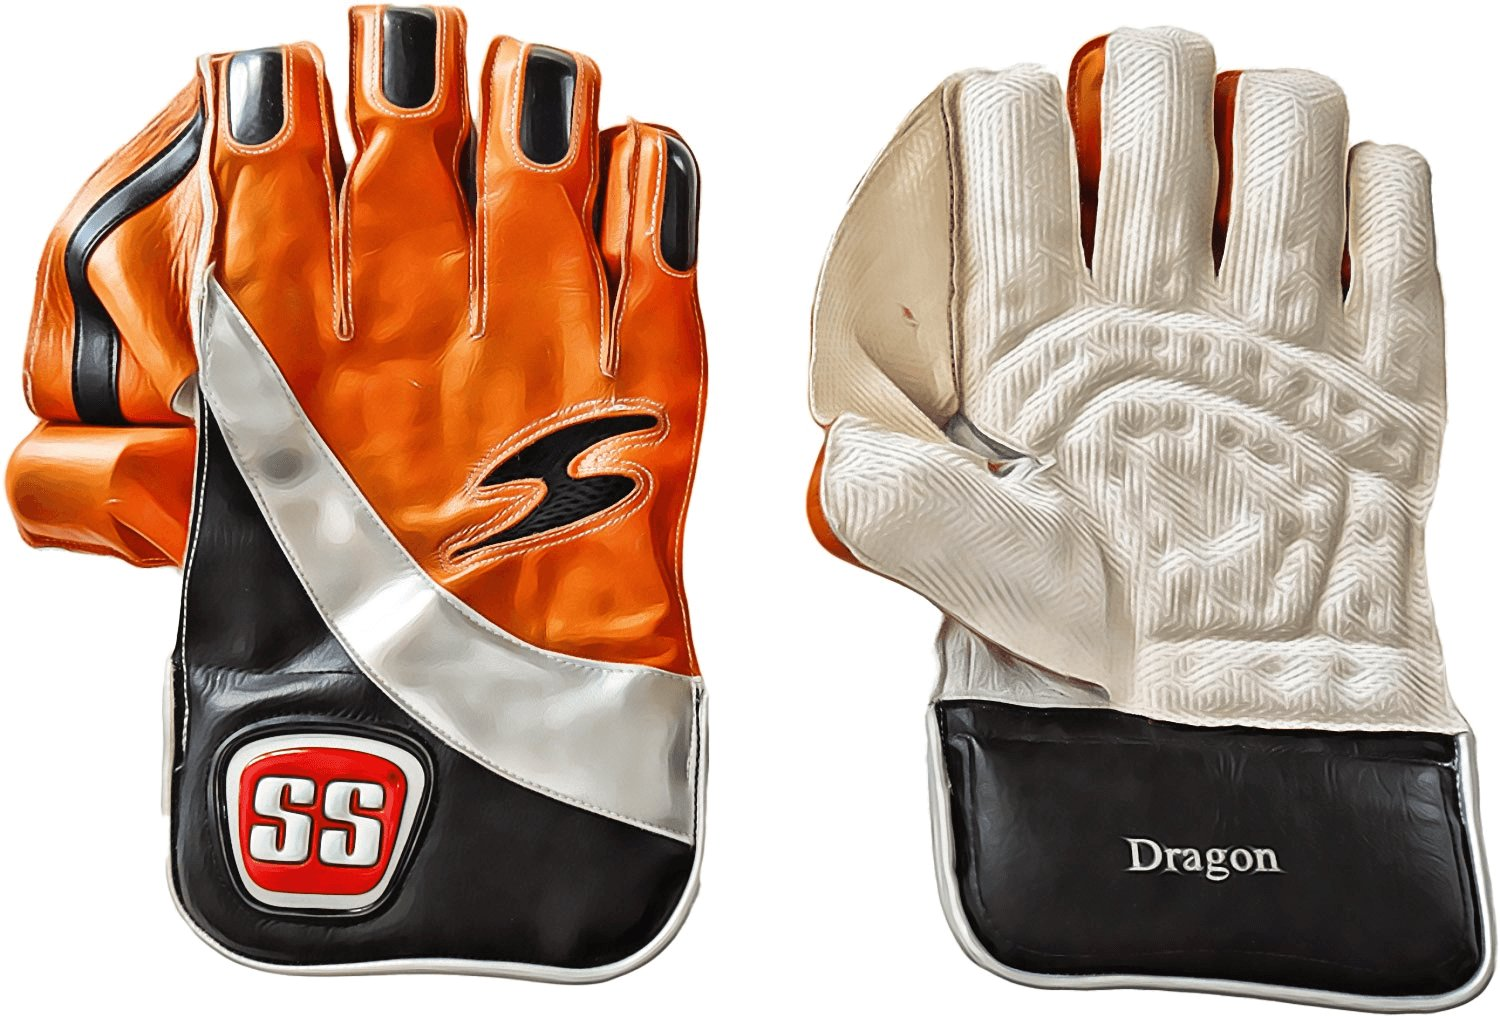 SS Men's Dragon Wicket-Keeping Cricket Gloves